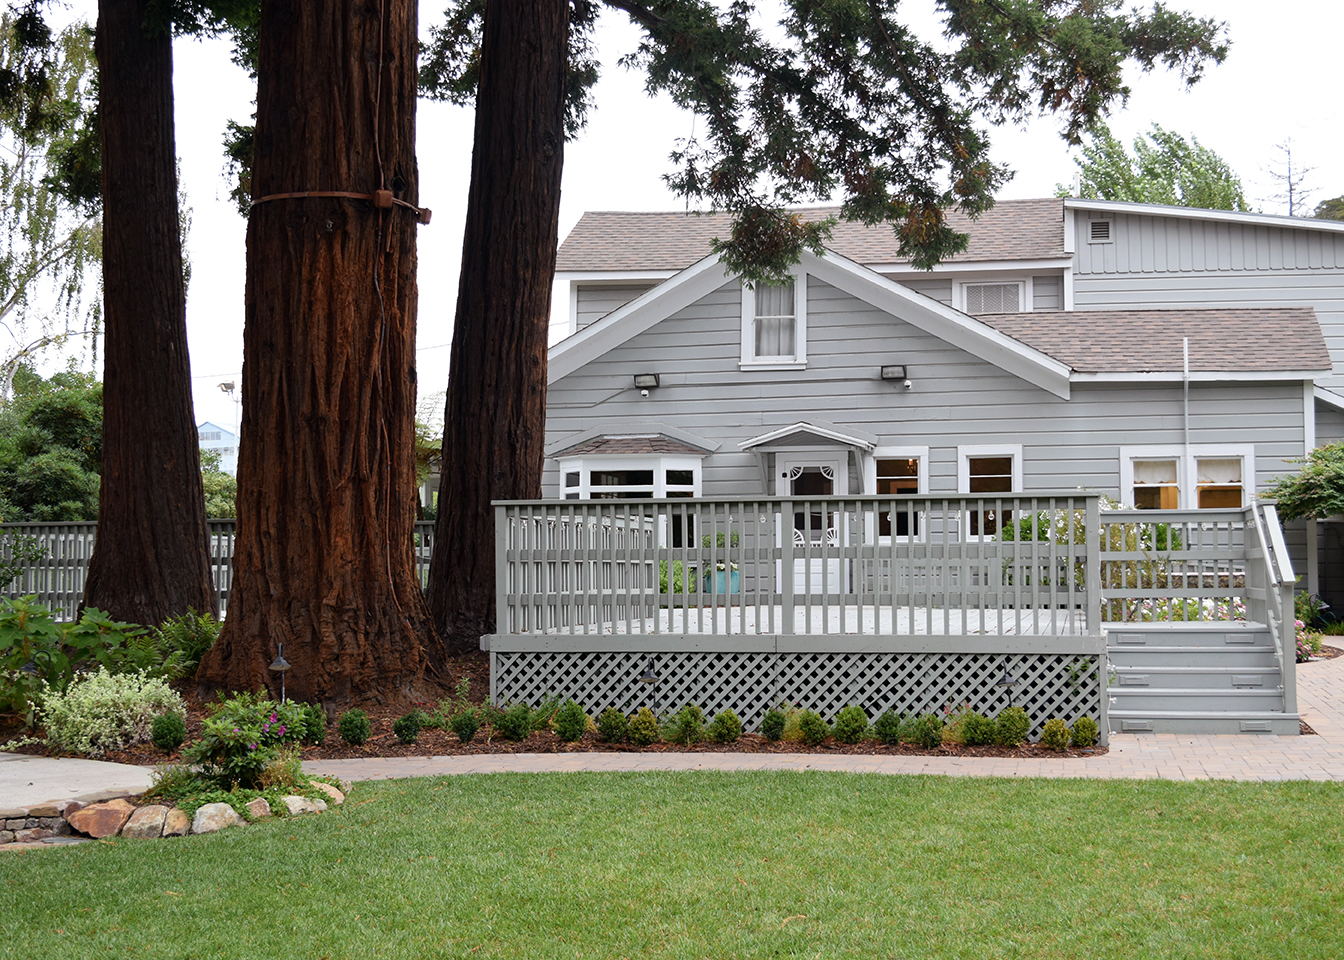 Exterior: redwood trees and house